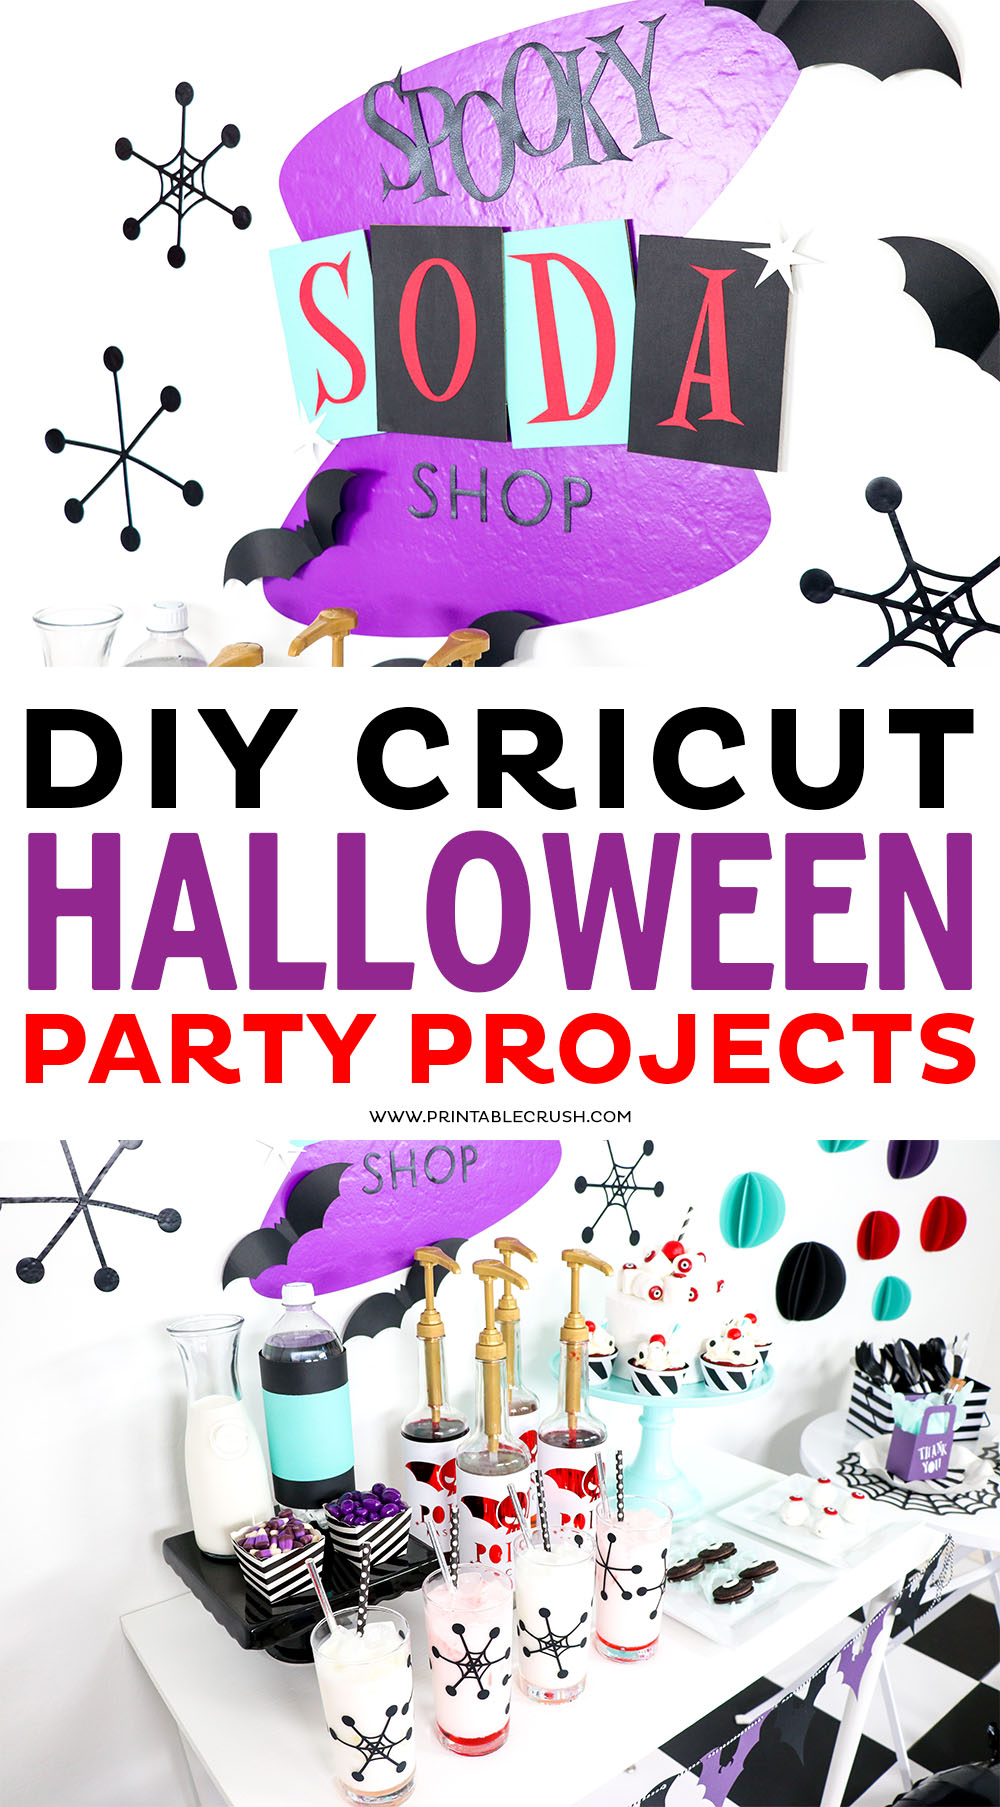 Open these DIY Cricut Halloween Projects in Cricut Design Space and MAKE IT right away...No need to edit the files but you can if you want to!